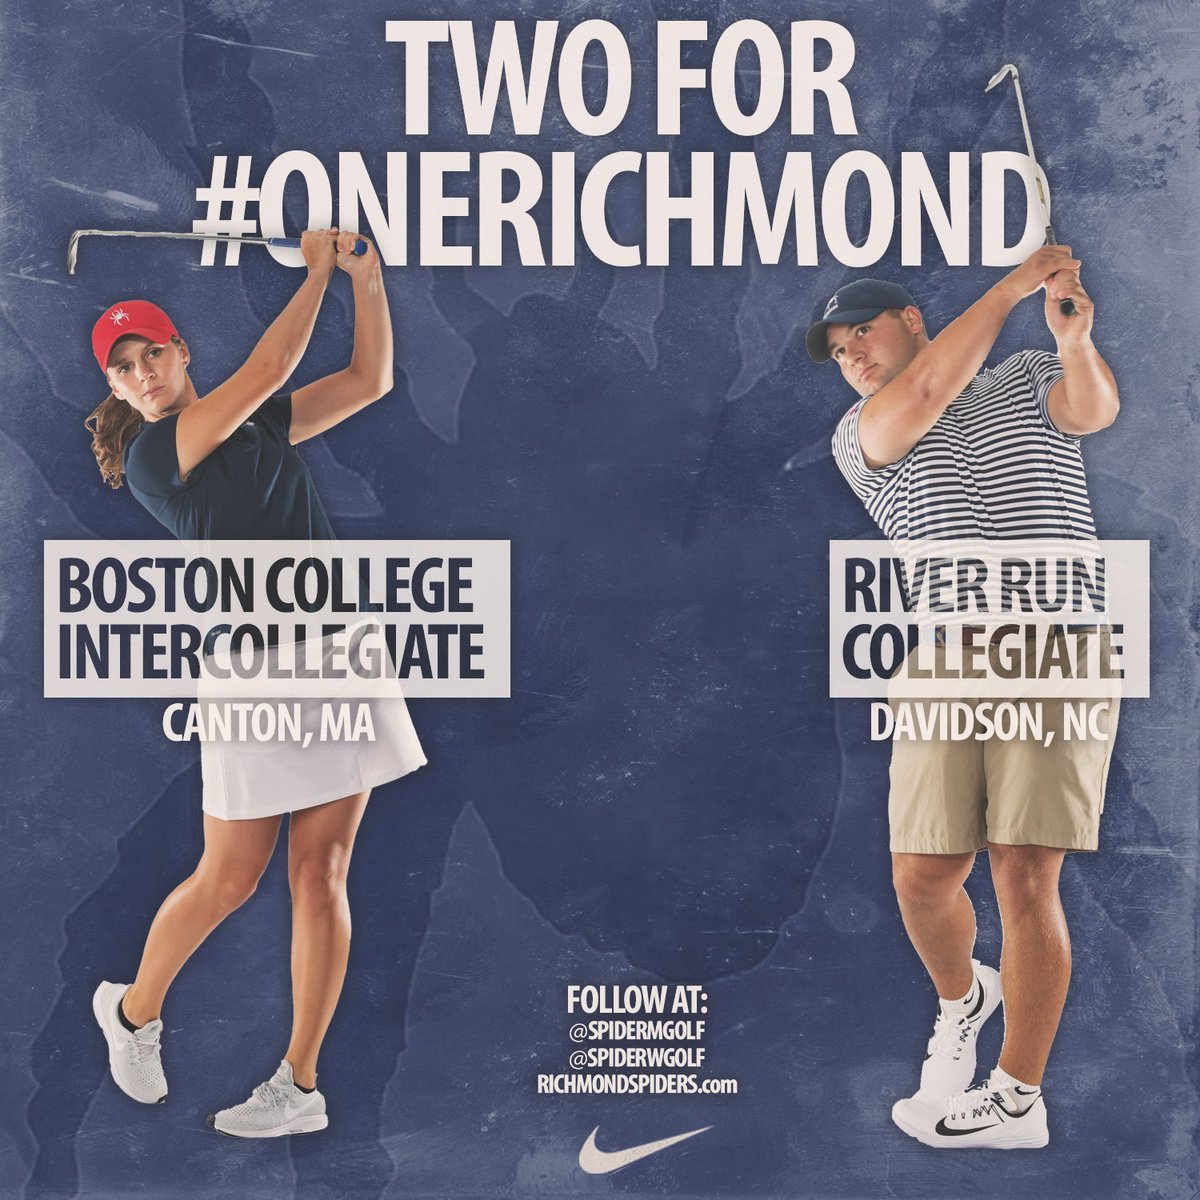 Richmond Women's Golf on Twitter: